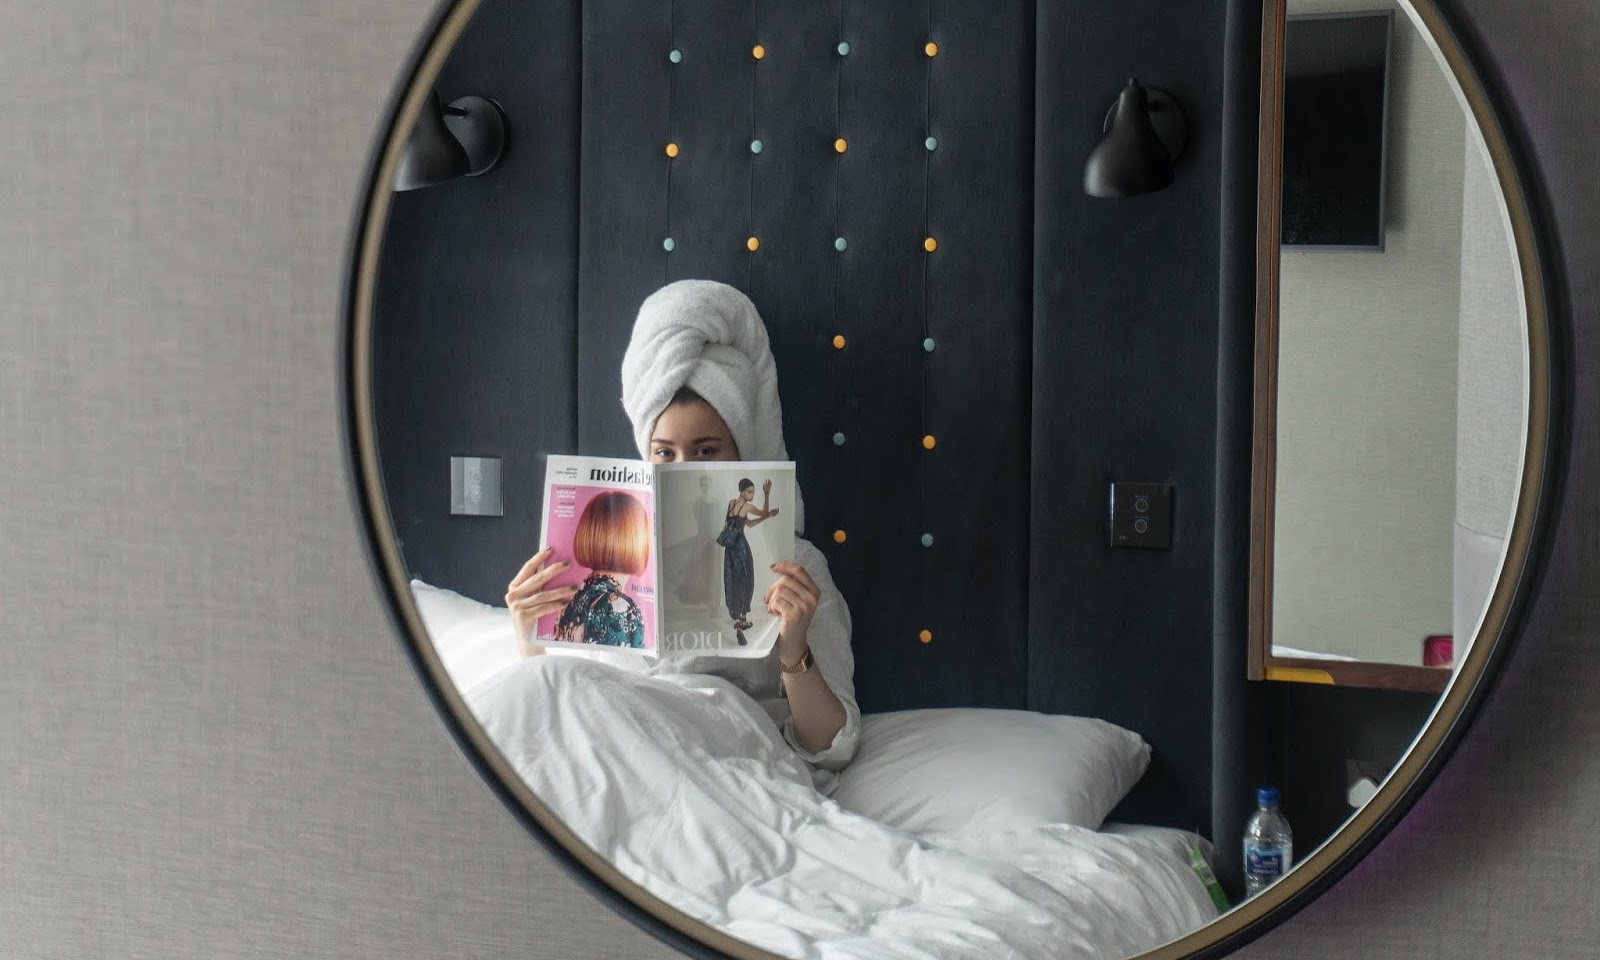 A Weekend in Shoreditch with Point a. Hotels